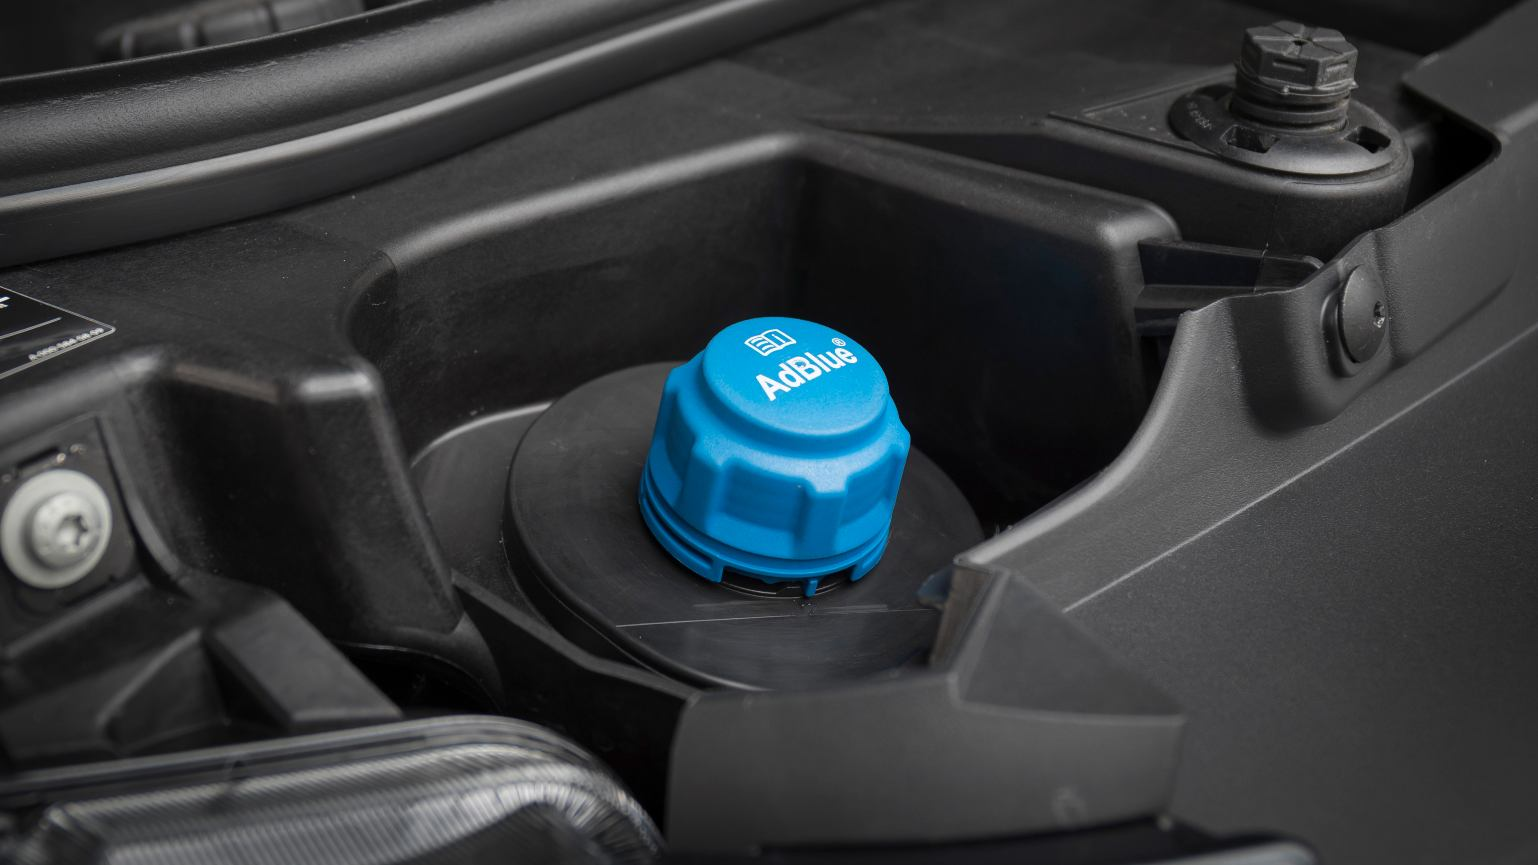 The companies agreed on the size of onboard tanks containing a urea solution known as AdBlue that is injected into the exhaust stream to limit pollution from diesel engines. Image: Daimler